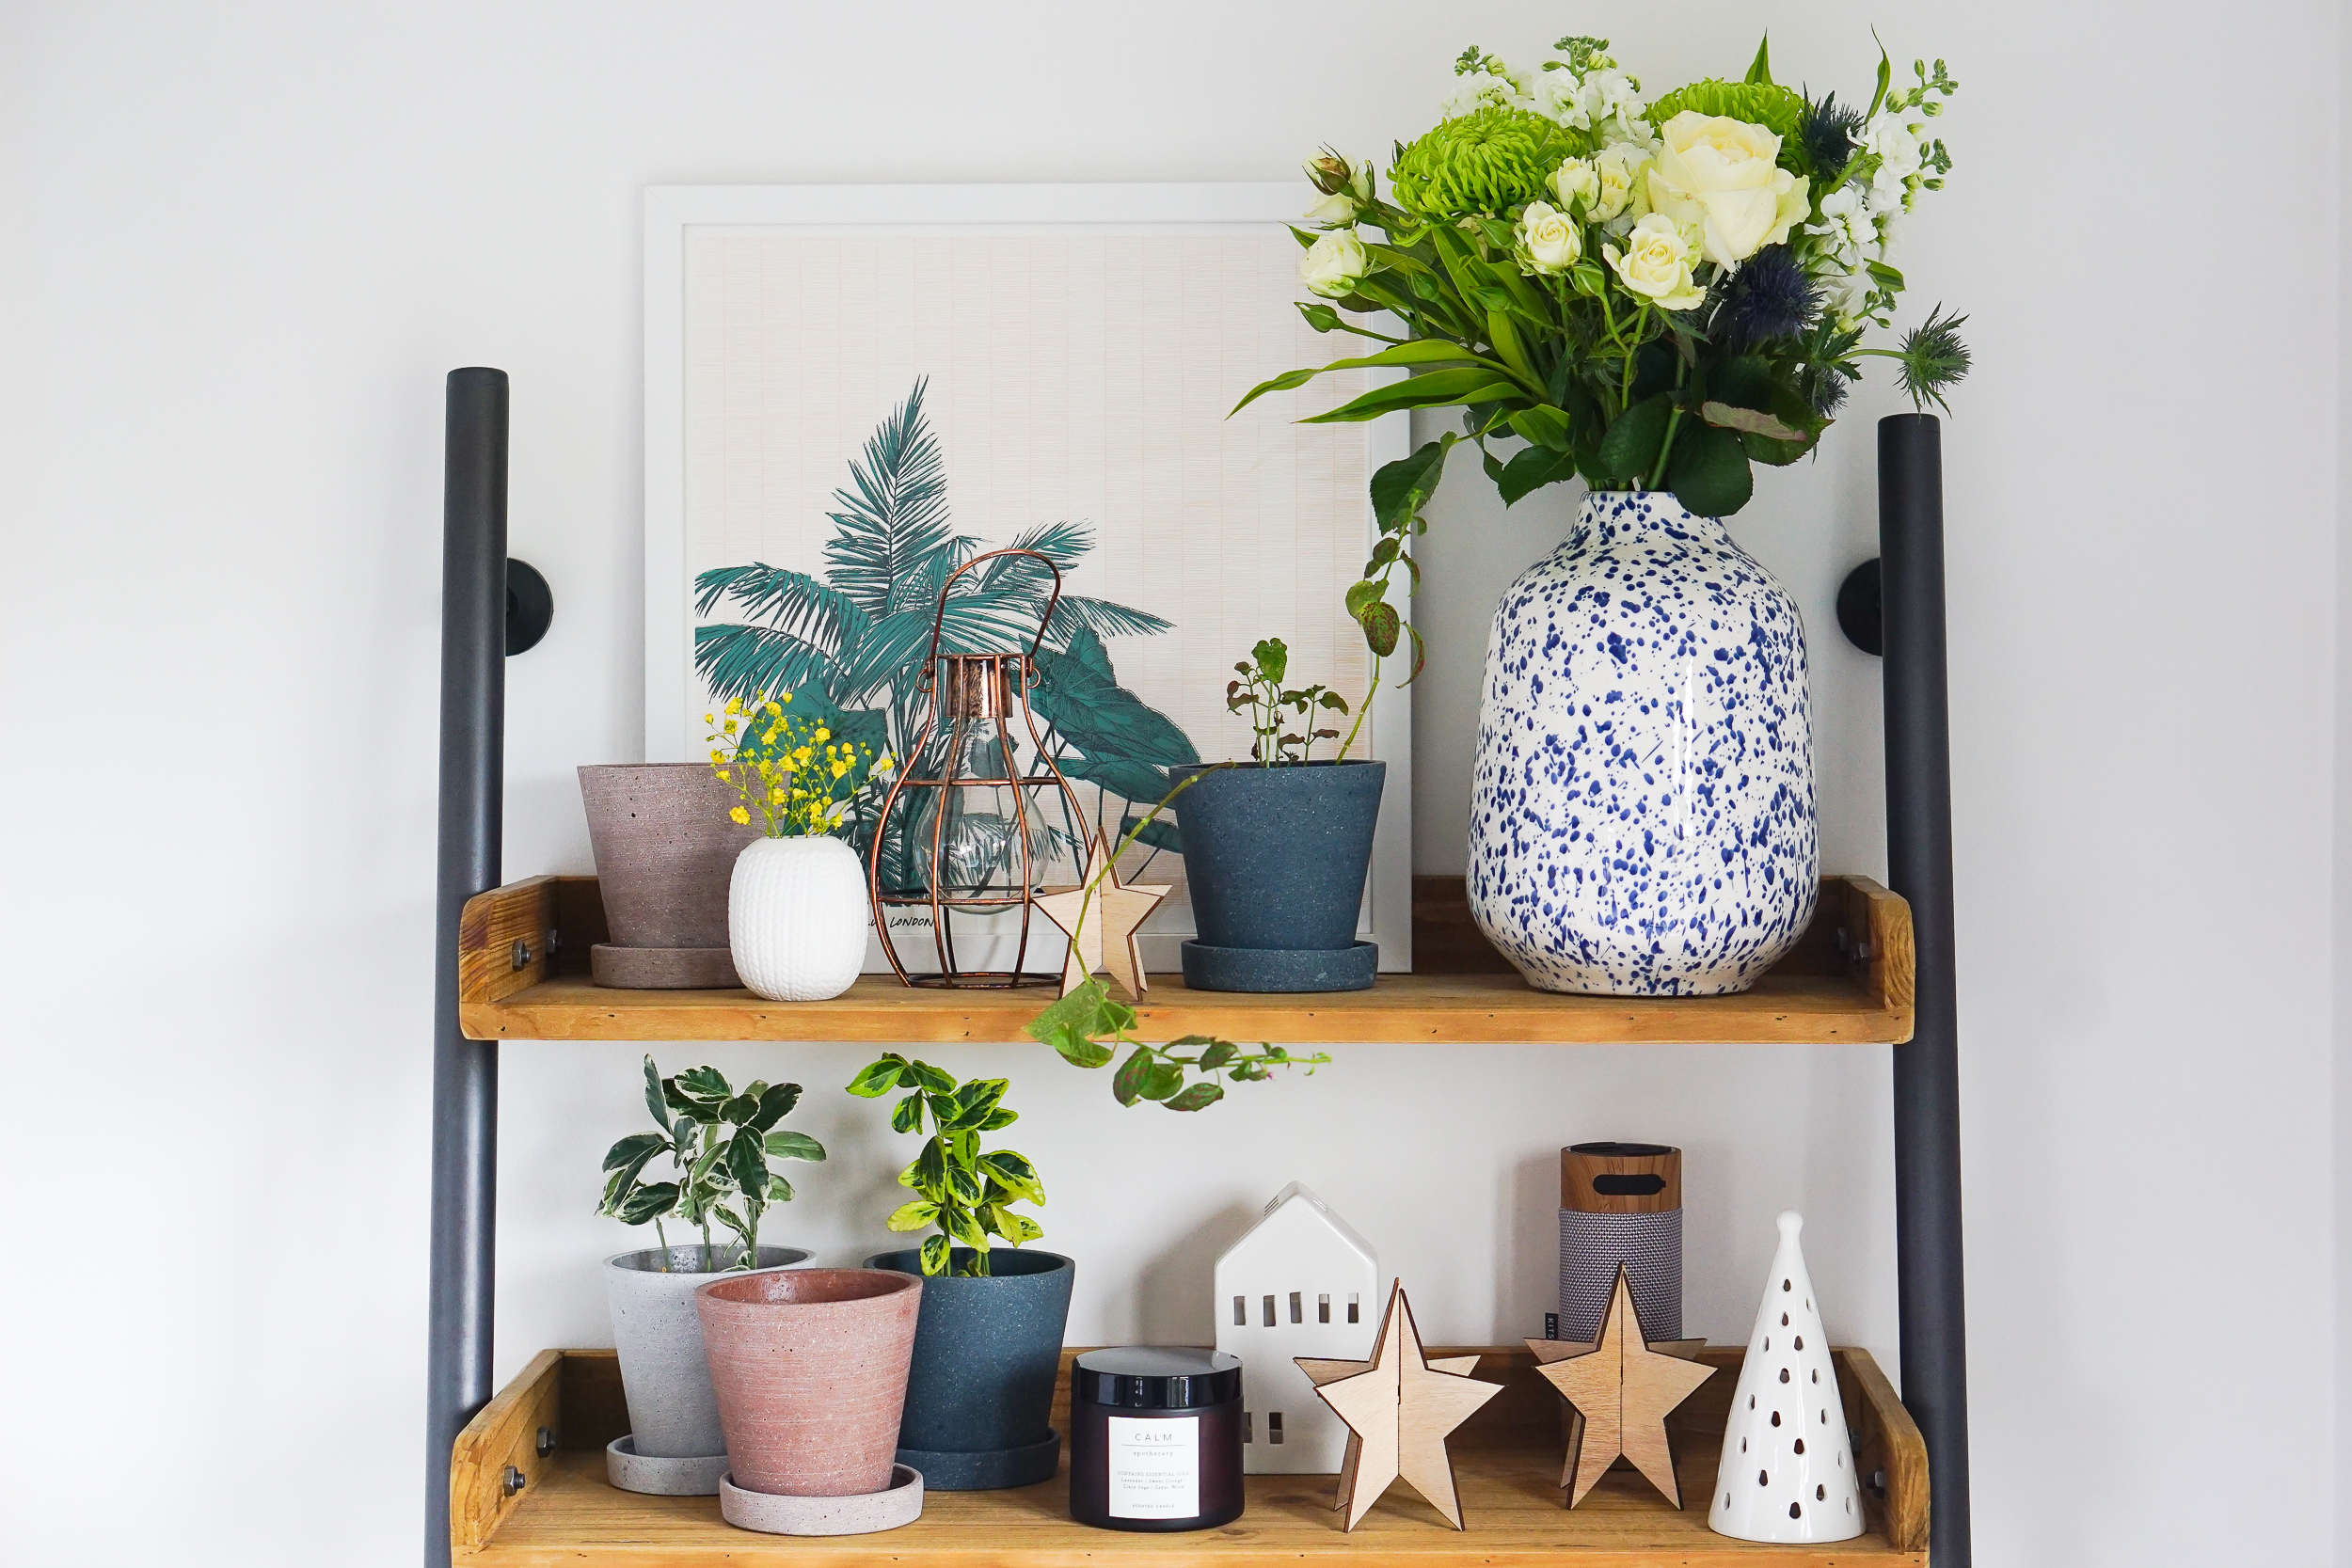 M&S Flowers - choosing and styling the perfect bunch